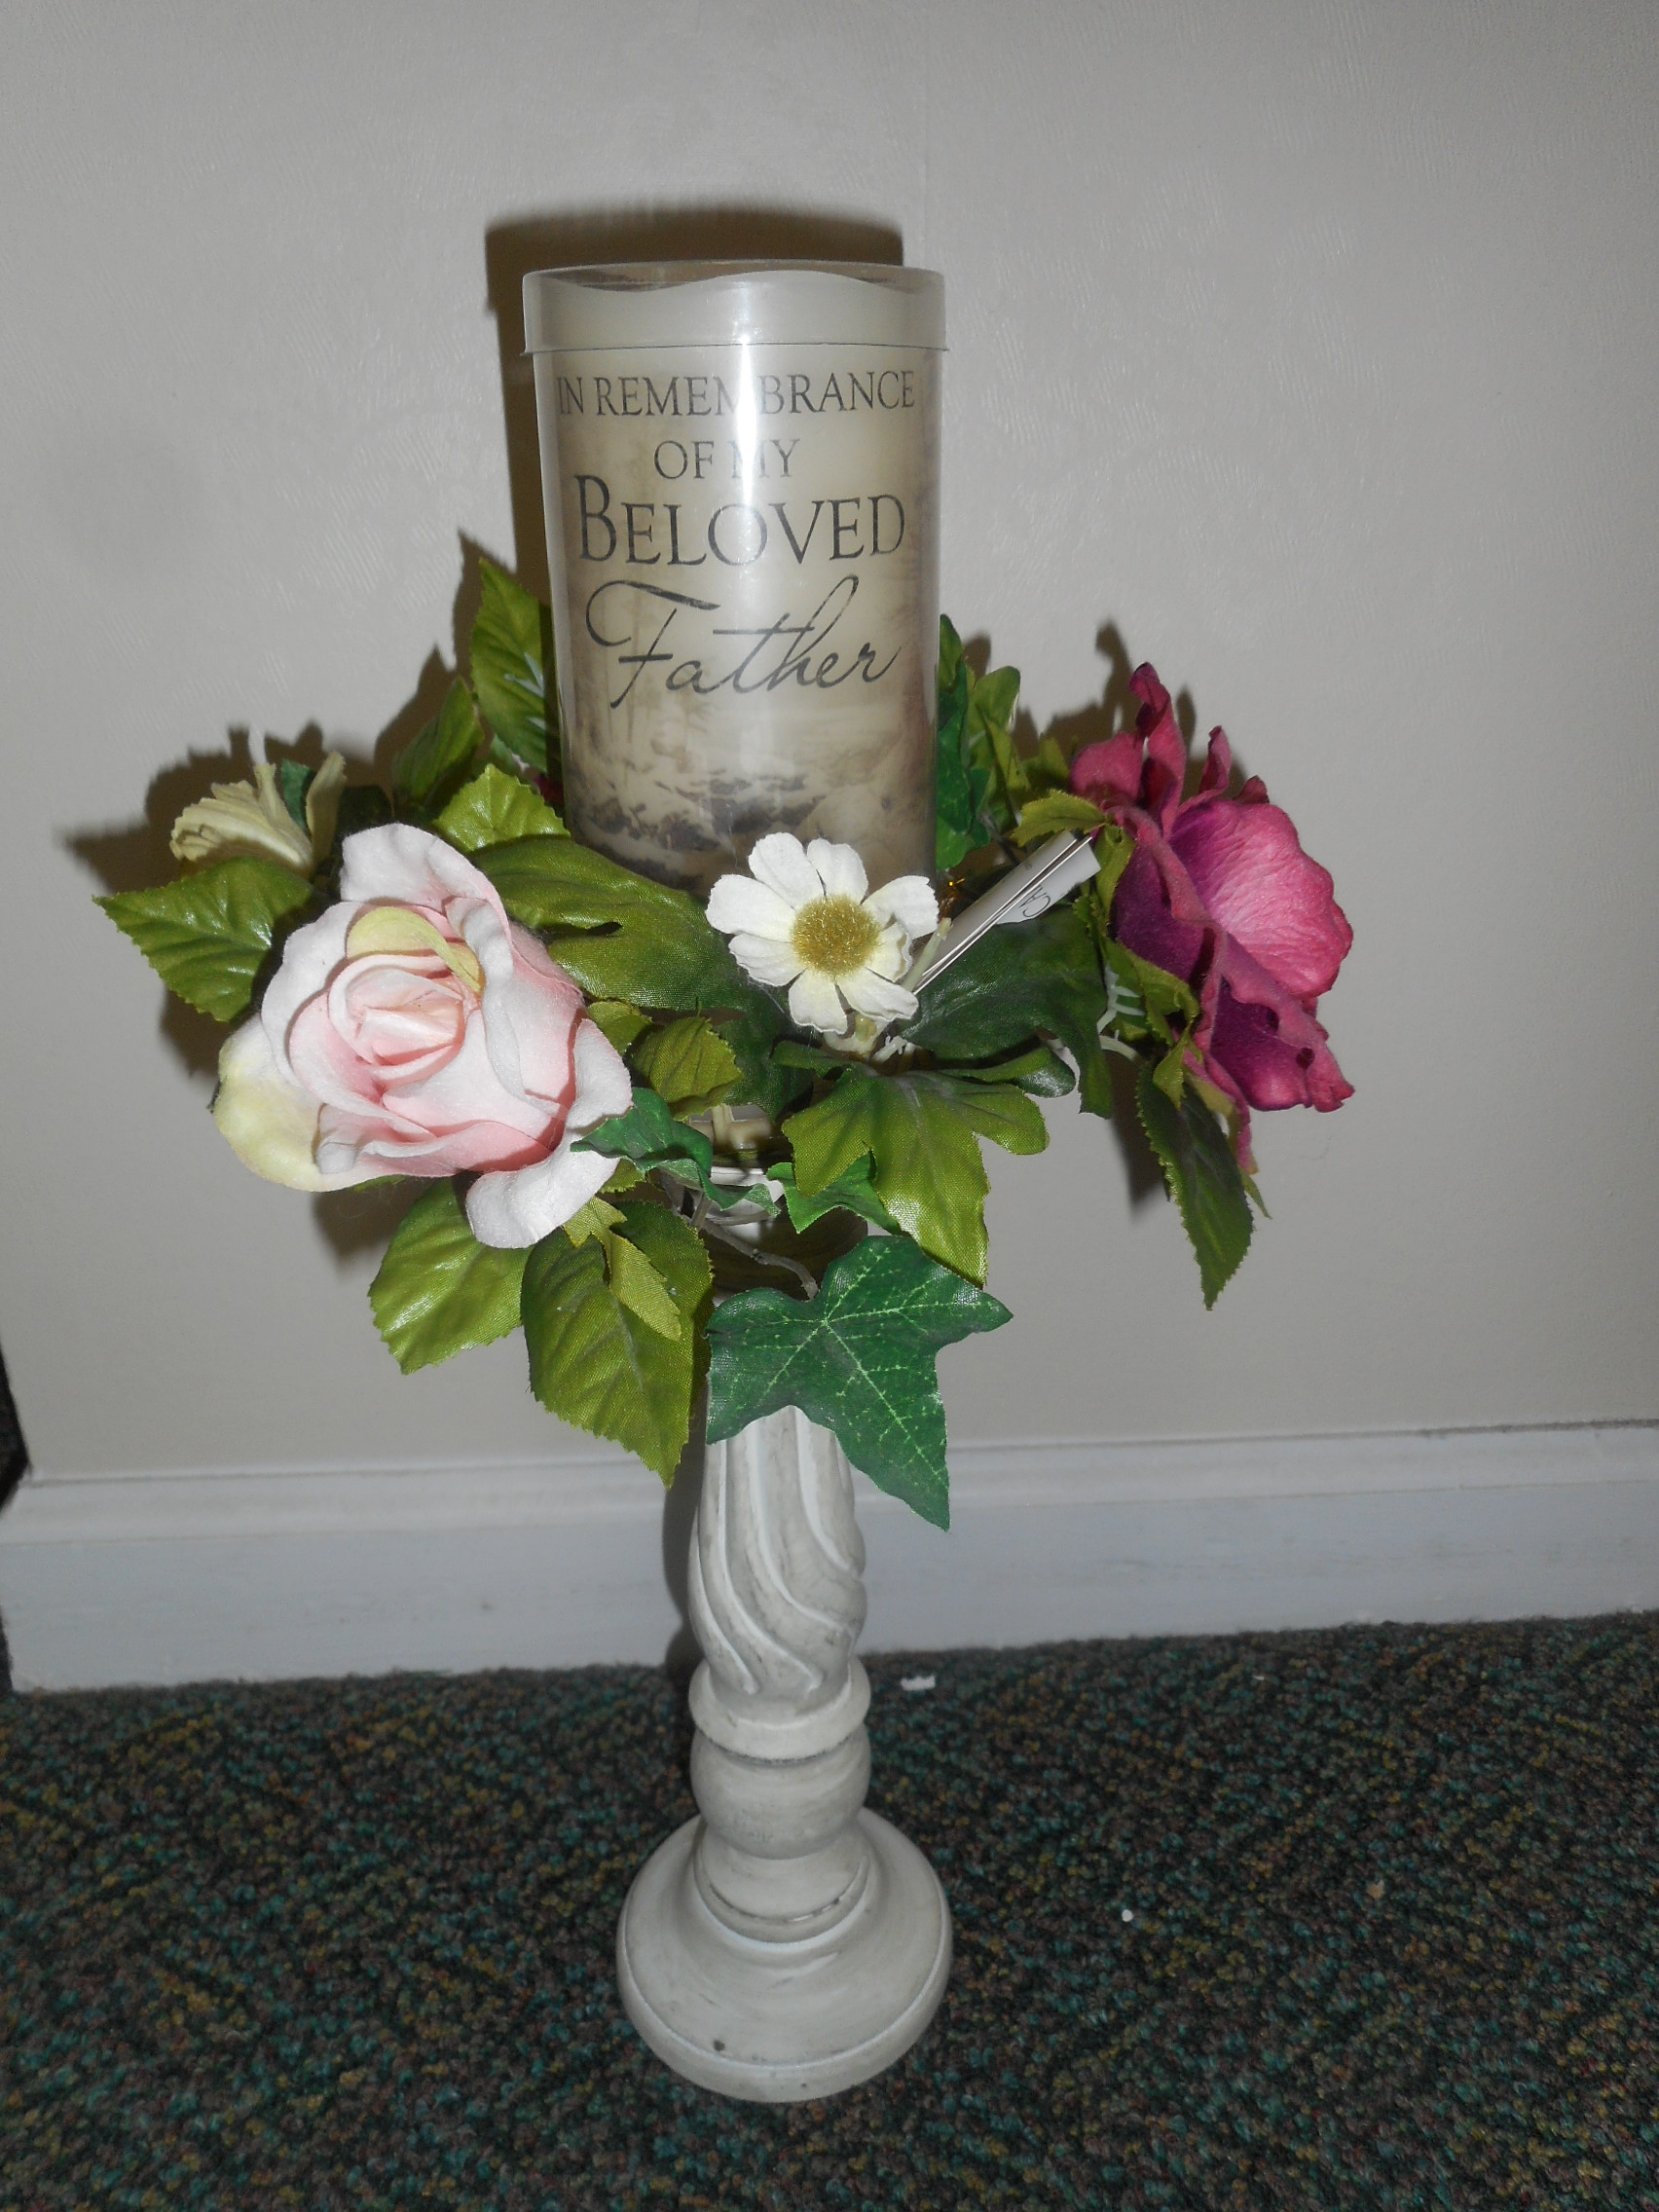 Floral arrangements wreaths plant gardens dish gardens this table piece candle holder with the beloved father inscription can be sent to anyone at a funeral home who has last their father izmirmasajfo